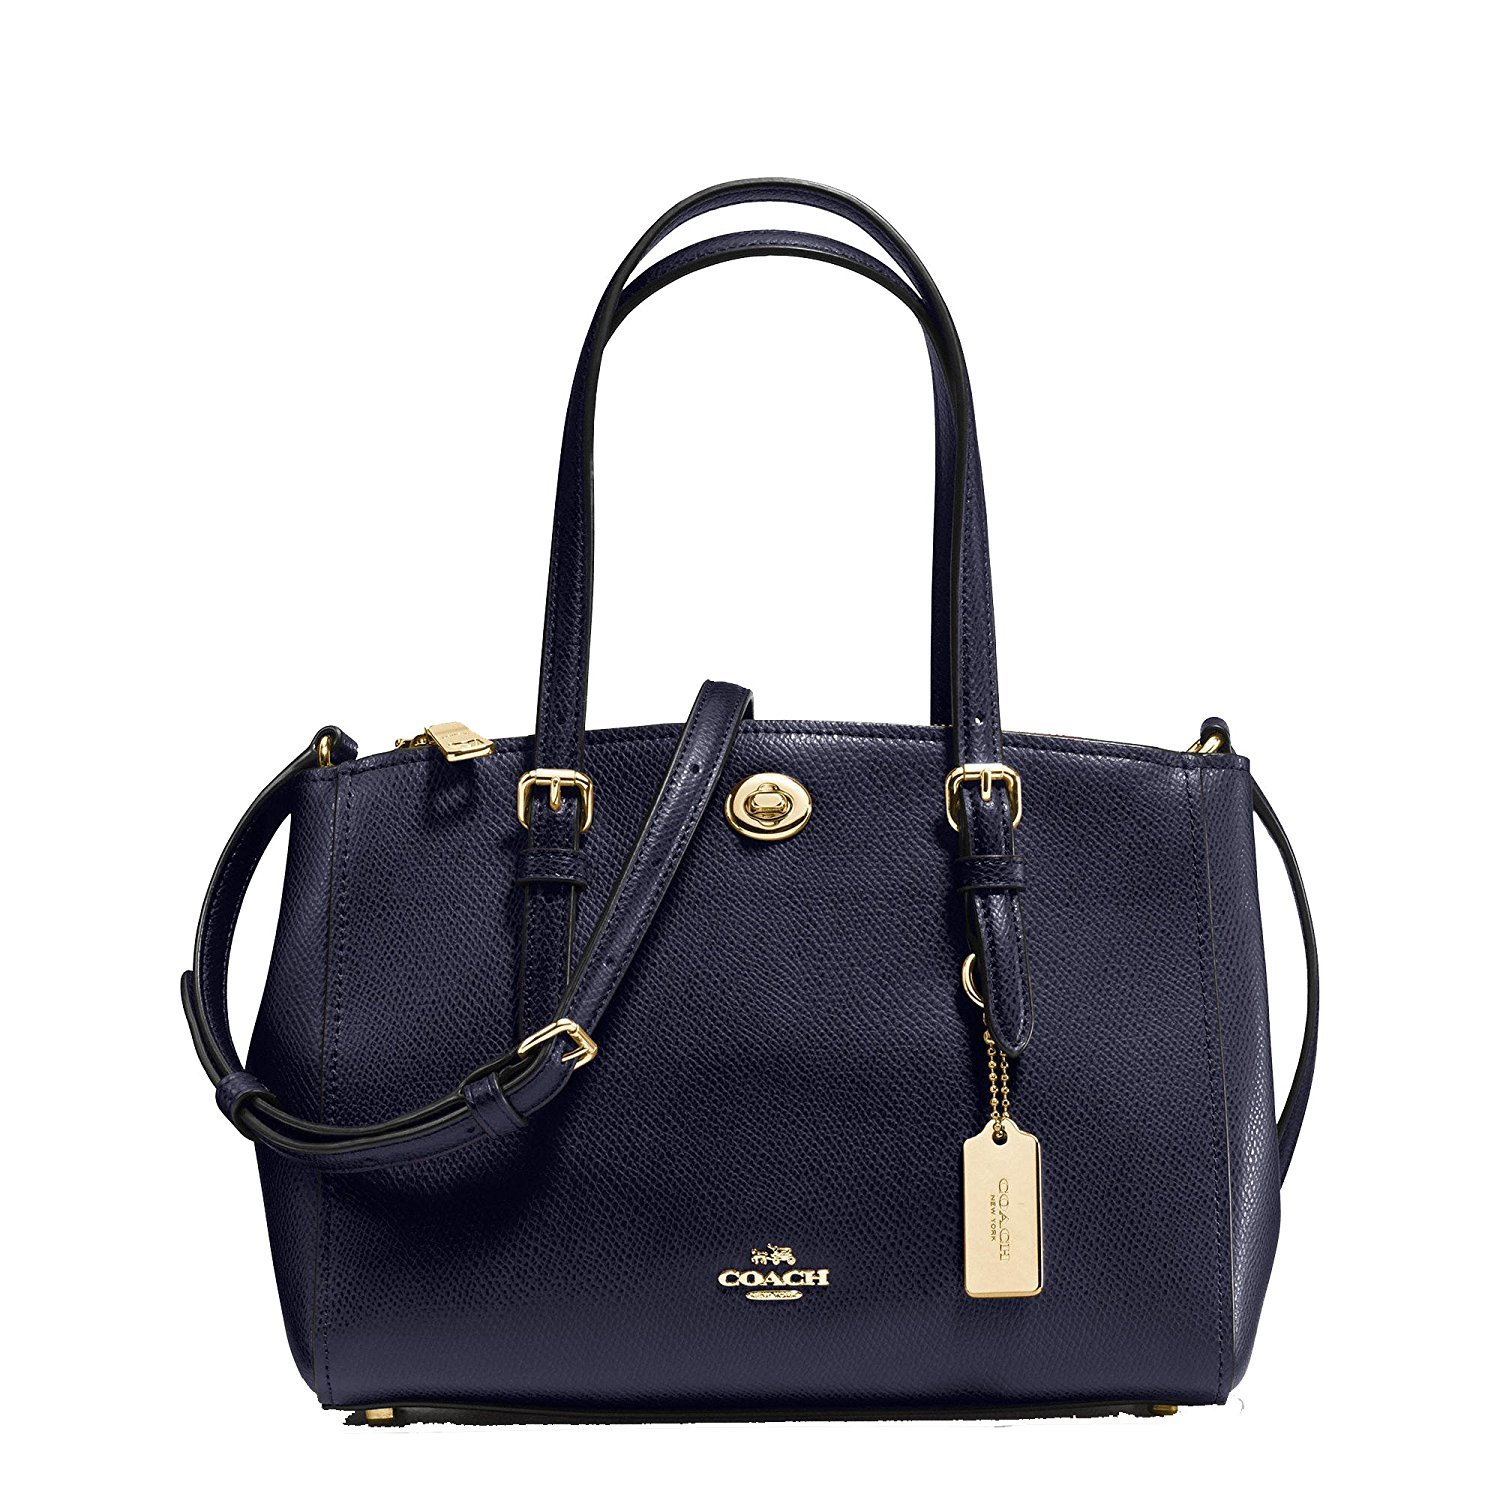 Coach Turnlock Carryall 26 in Crossgrain Leather Style No. 37937 (Navy)